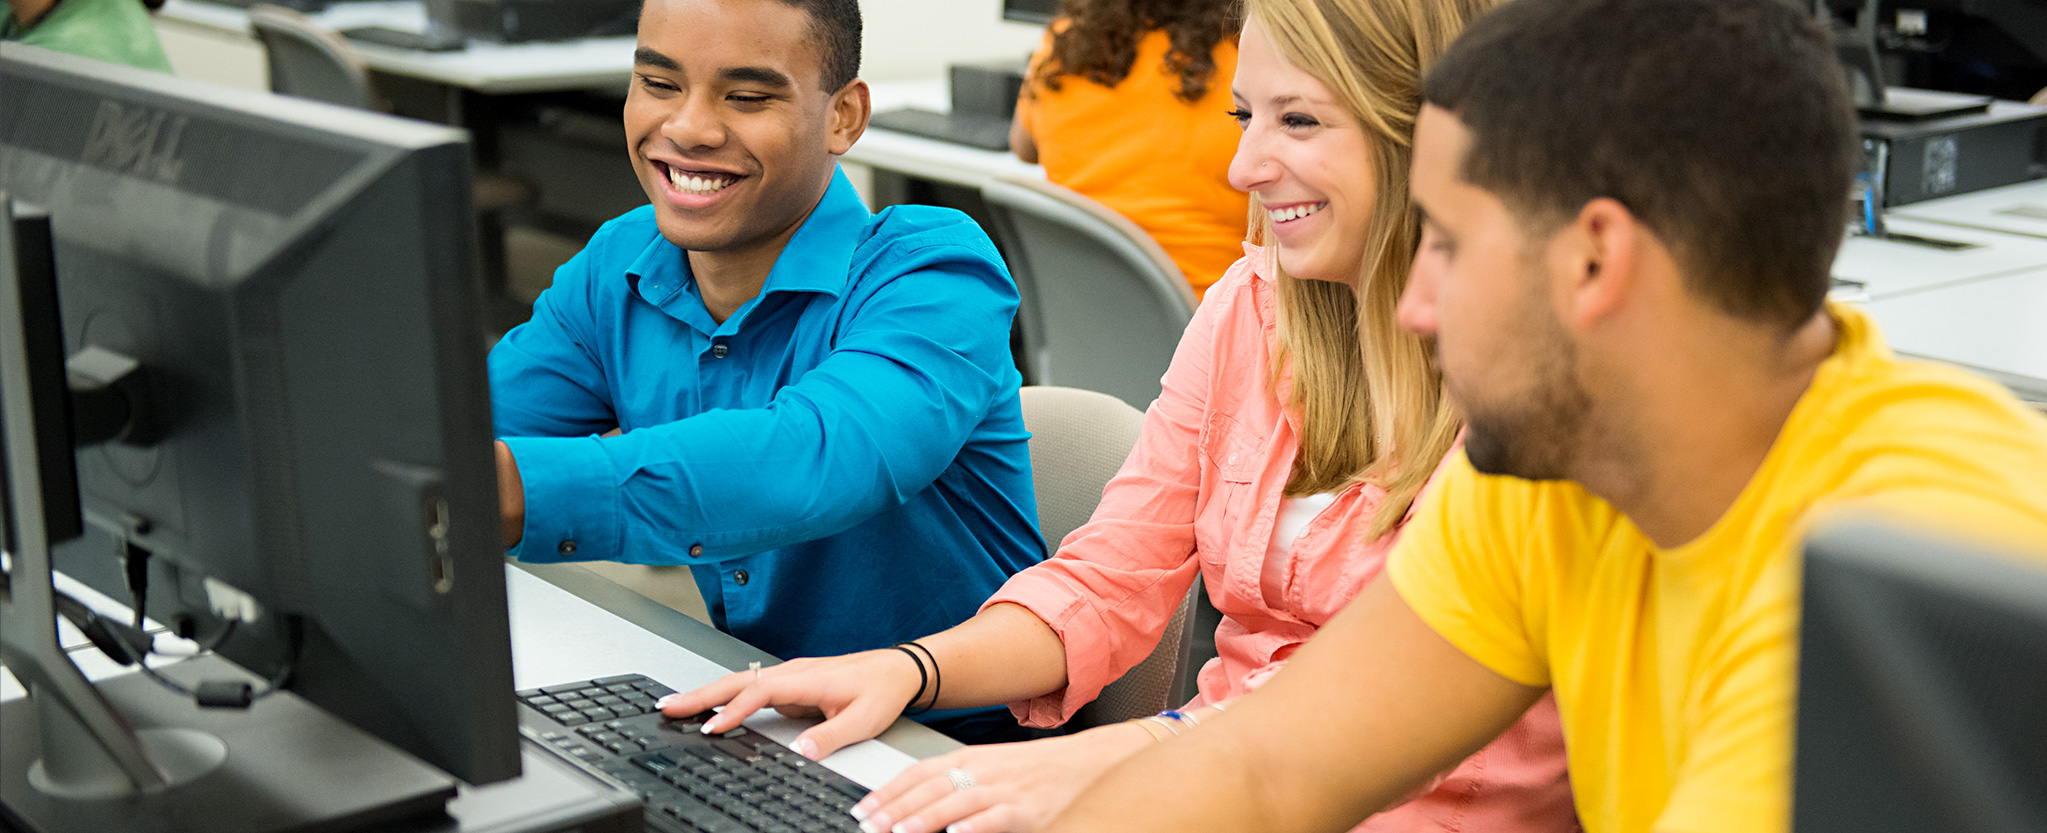 Students smile as they work together at a computer.